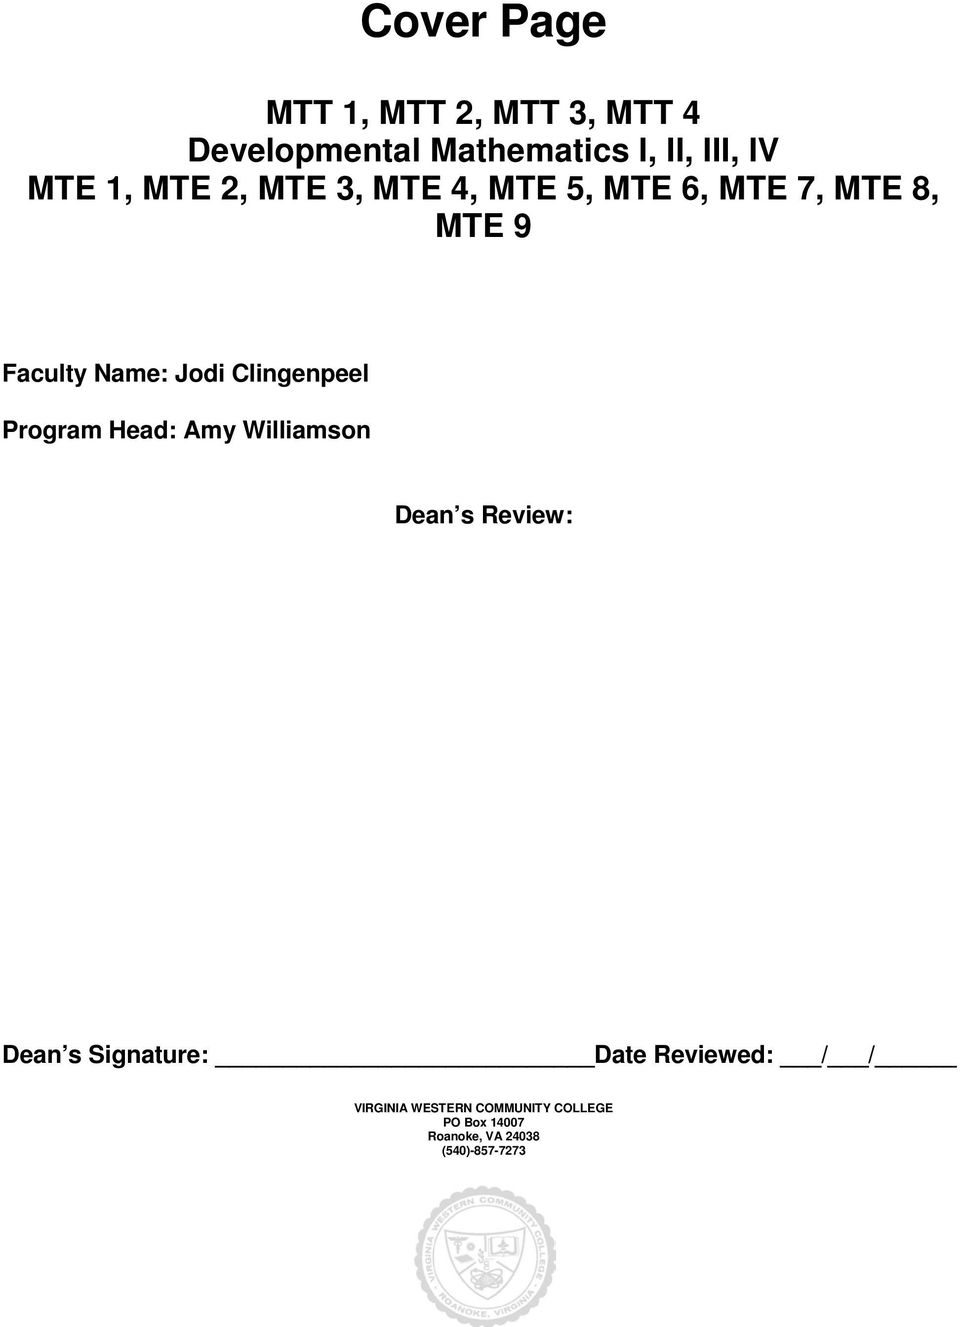 MTE 6, MTE 7, MTE 8, Faculty Name: Jodi Clingenpeel Program